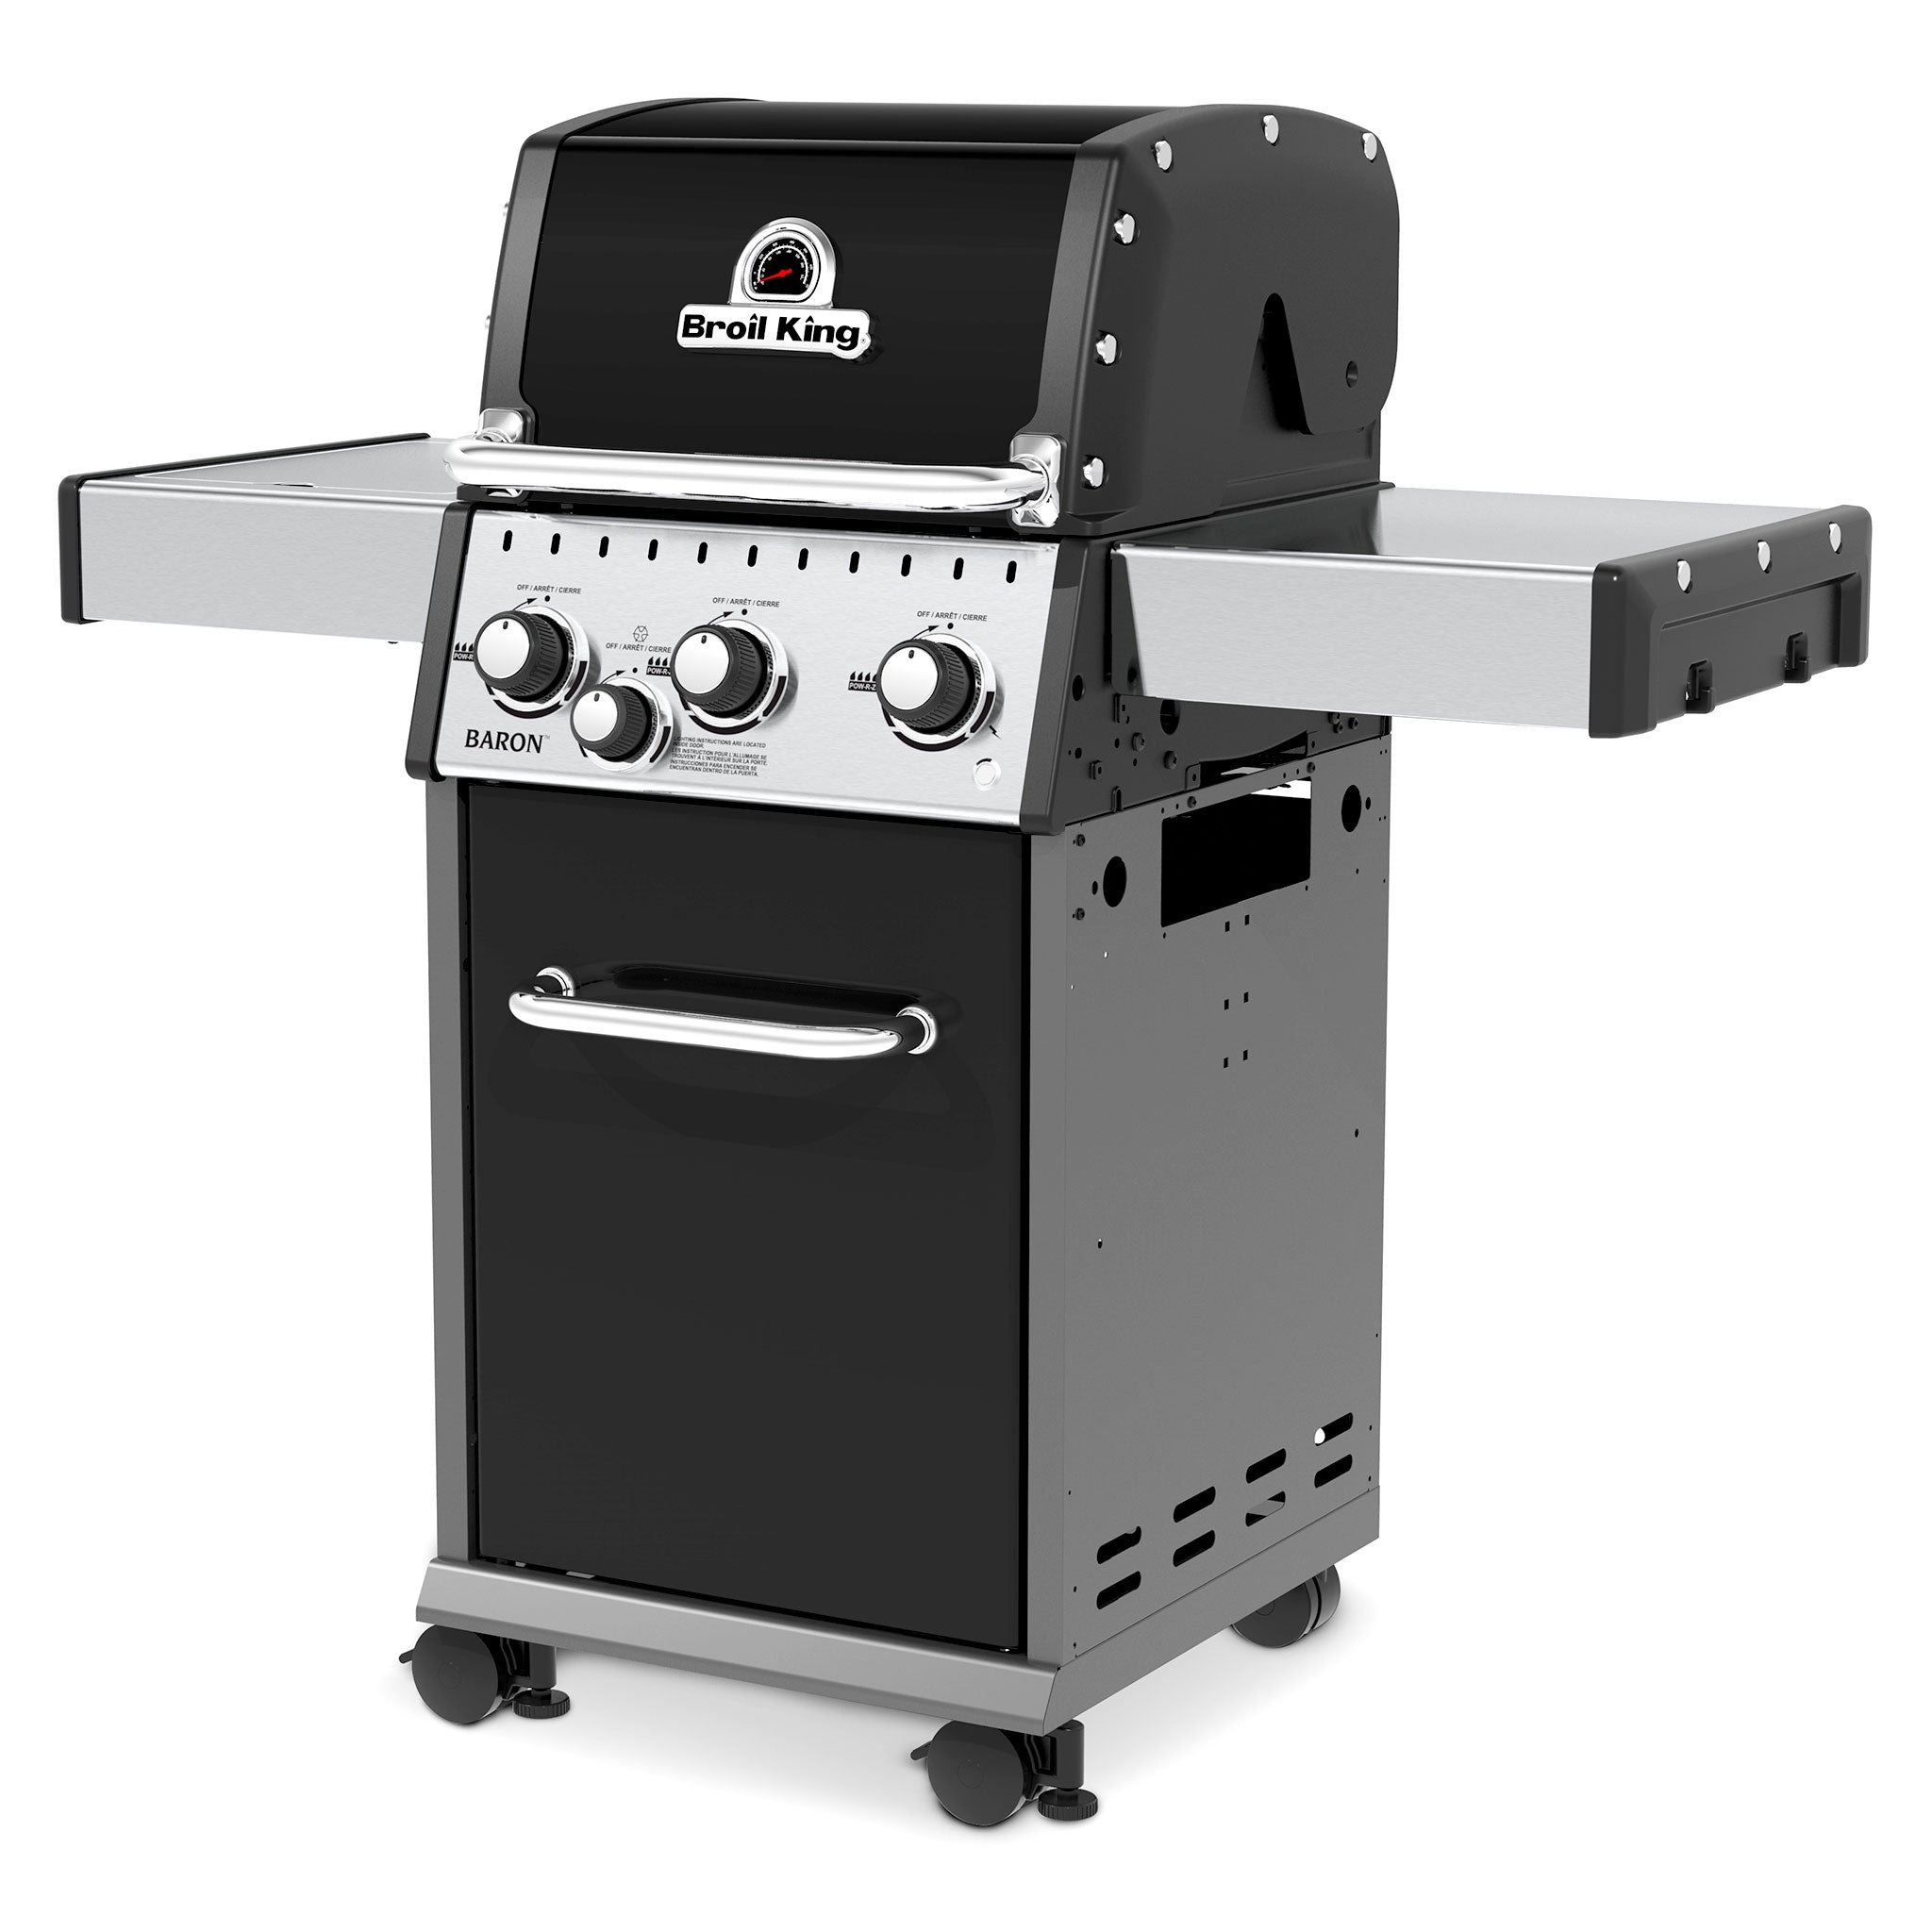 BARON 340 BROIL KING Gratar